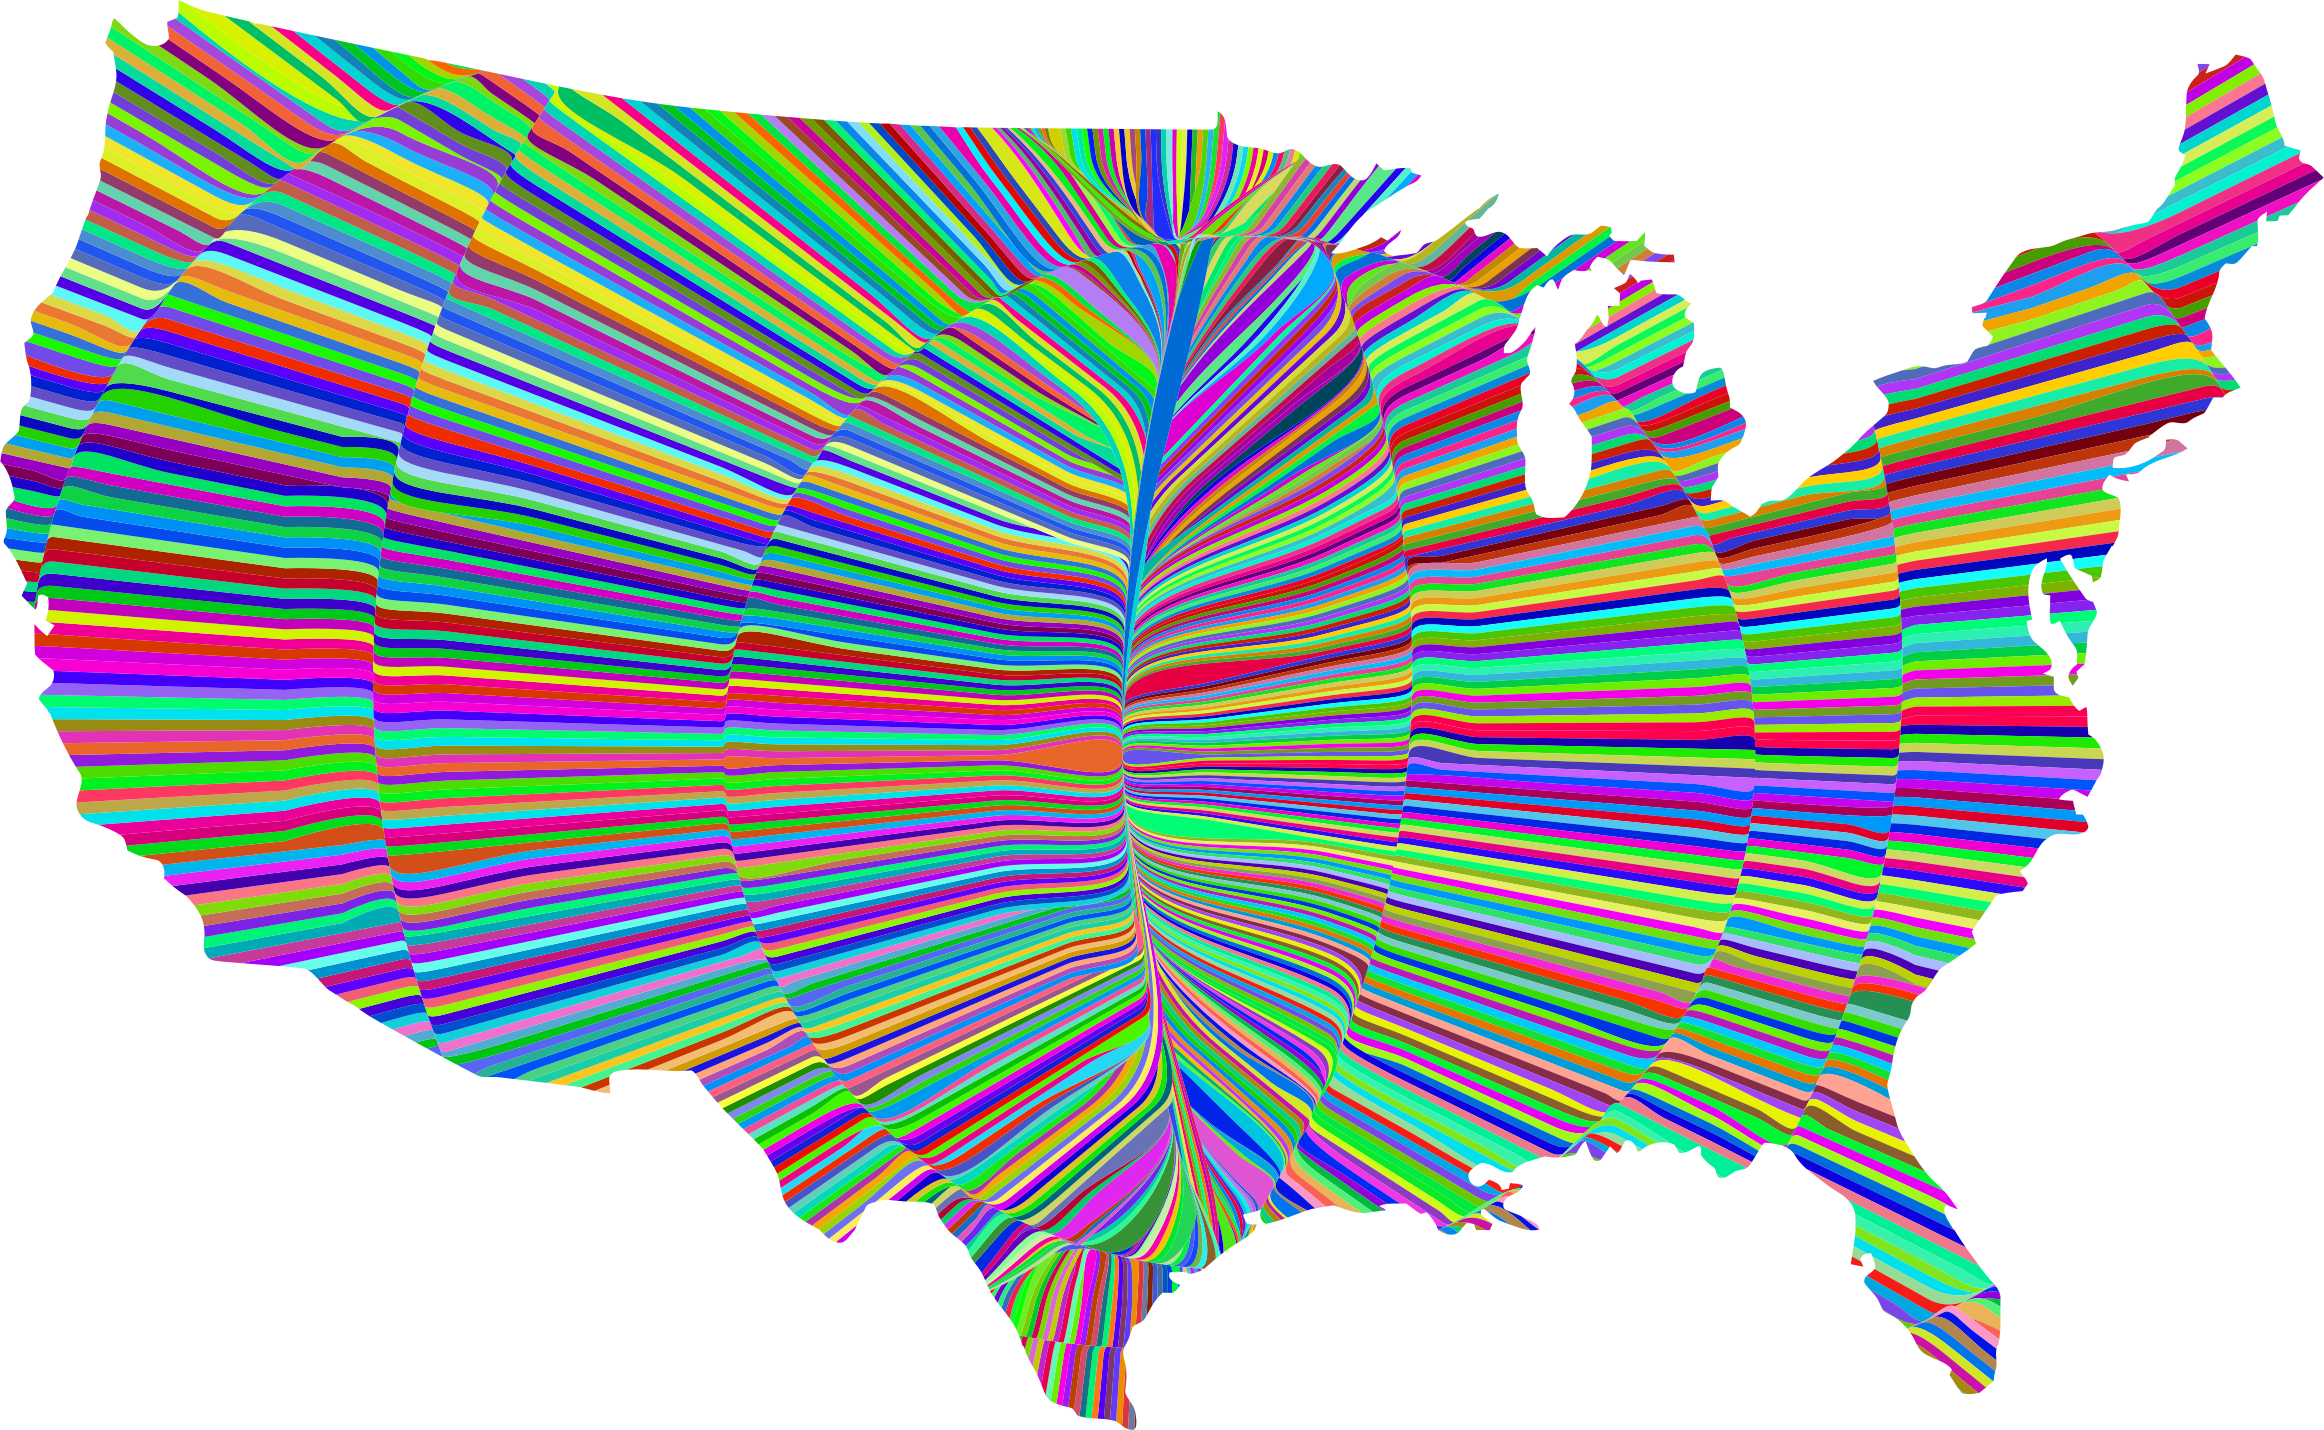 Map of united states clipart svg royalty free download Clipart - Psychedelic Waves United States Map svg royalty free download